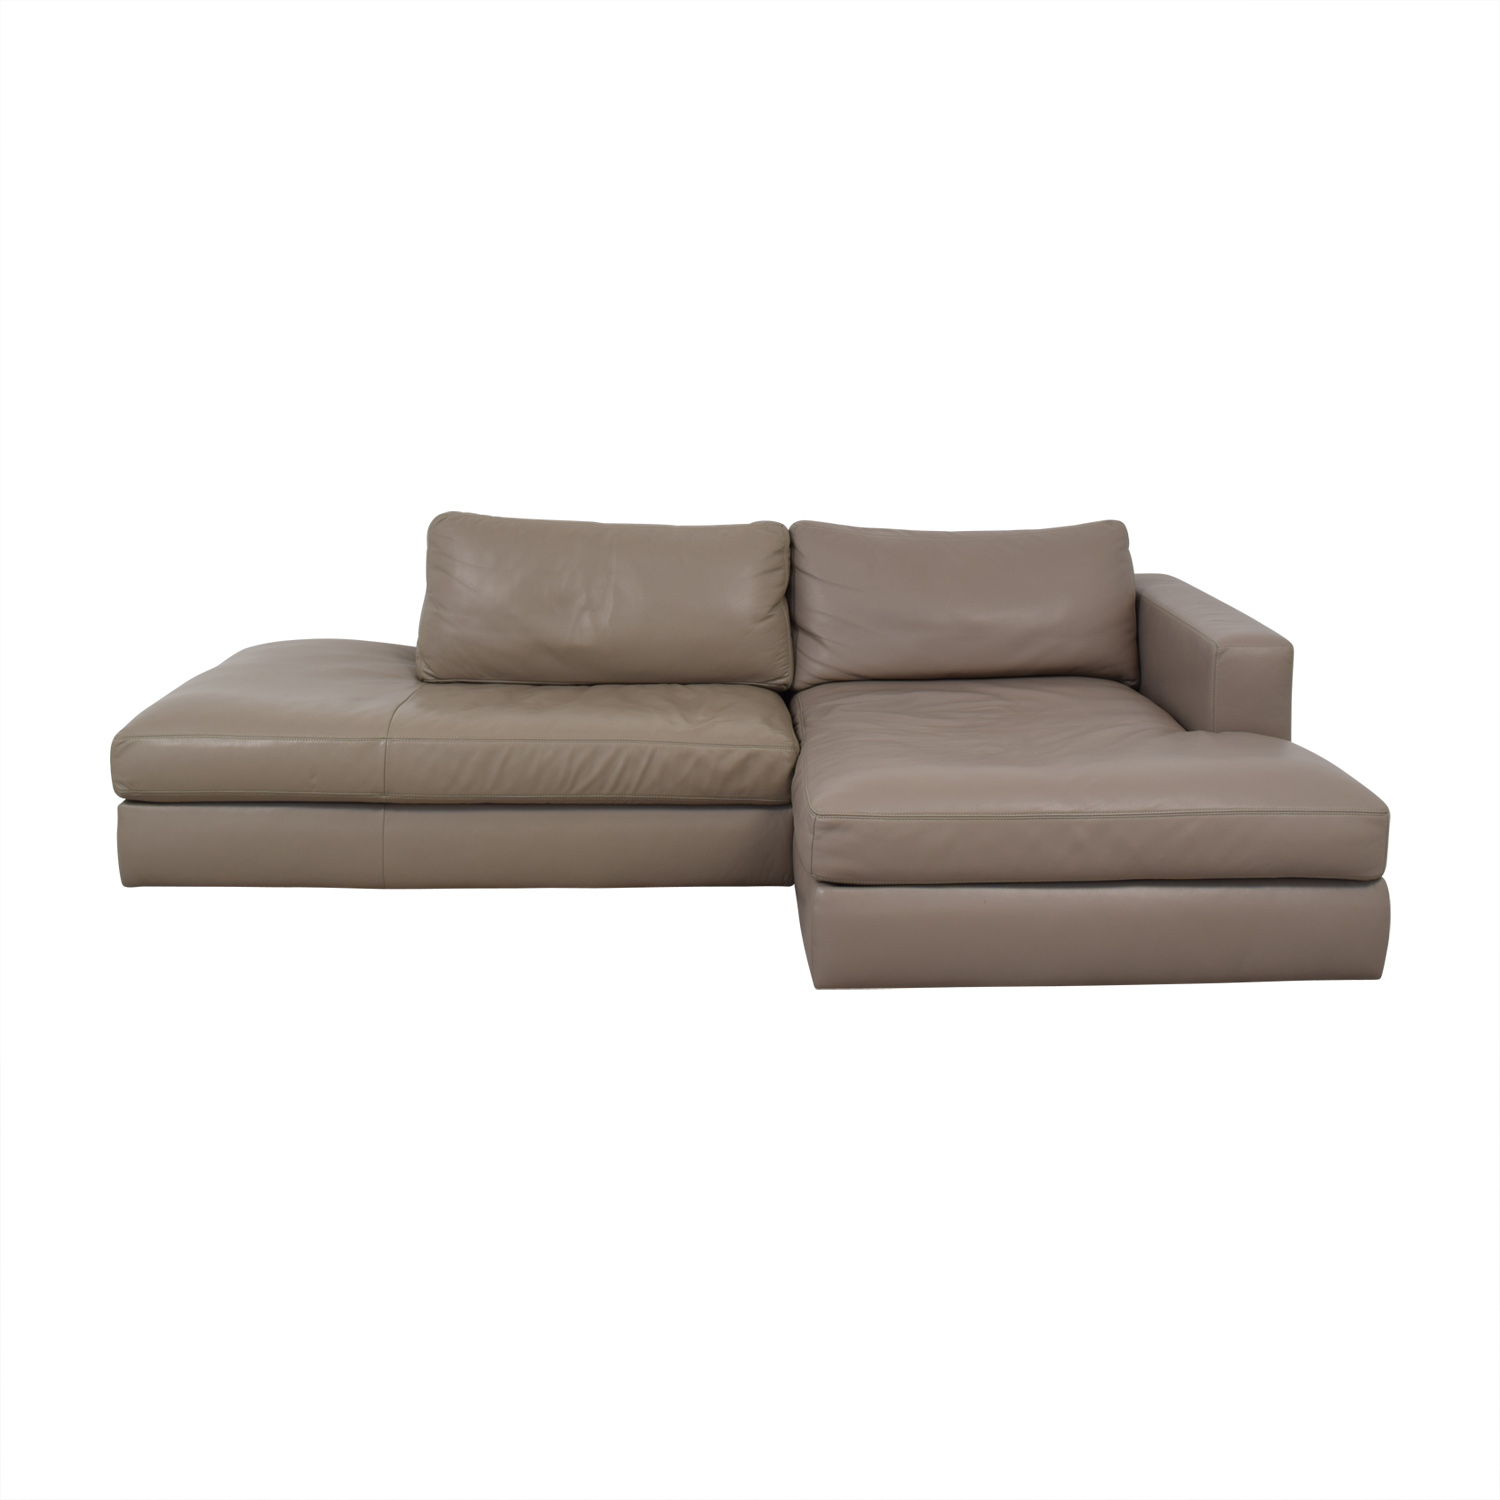 shop Design Within Reach Design Within Reach Reid Sectional Sofa online